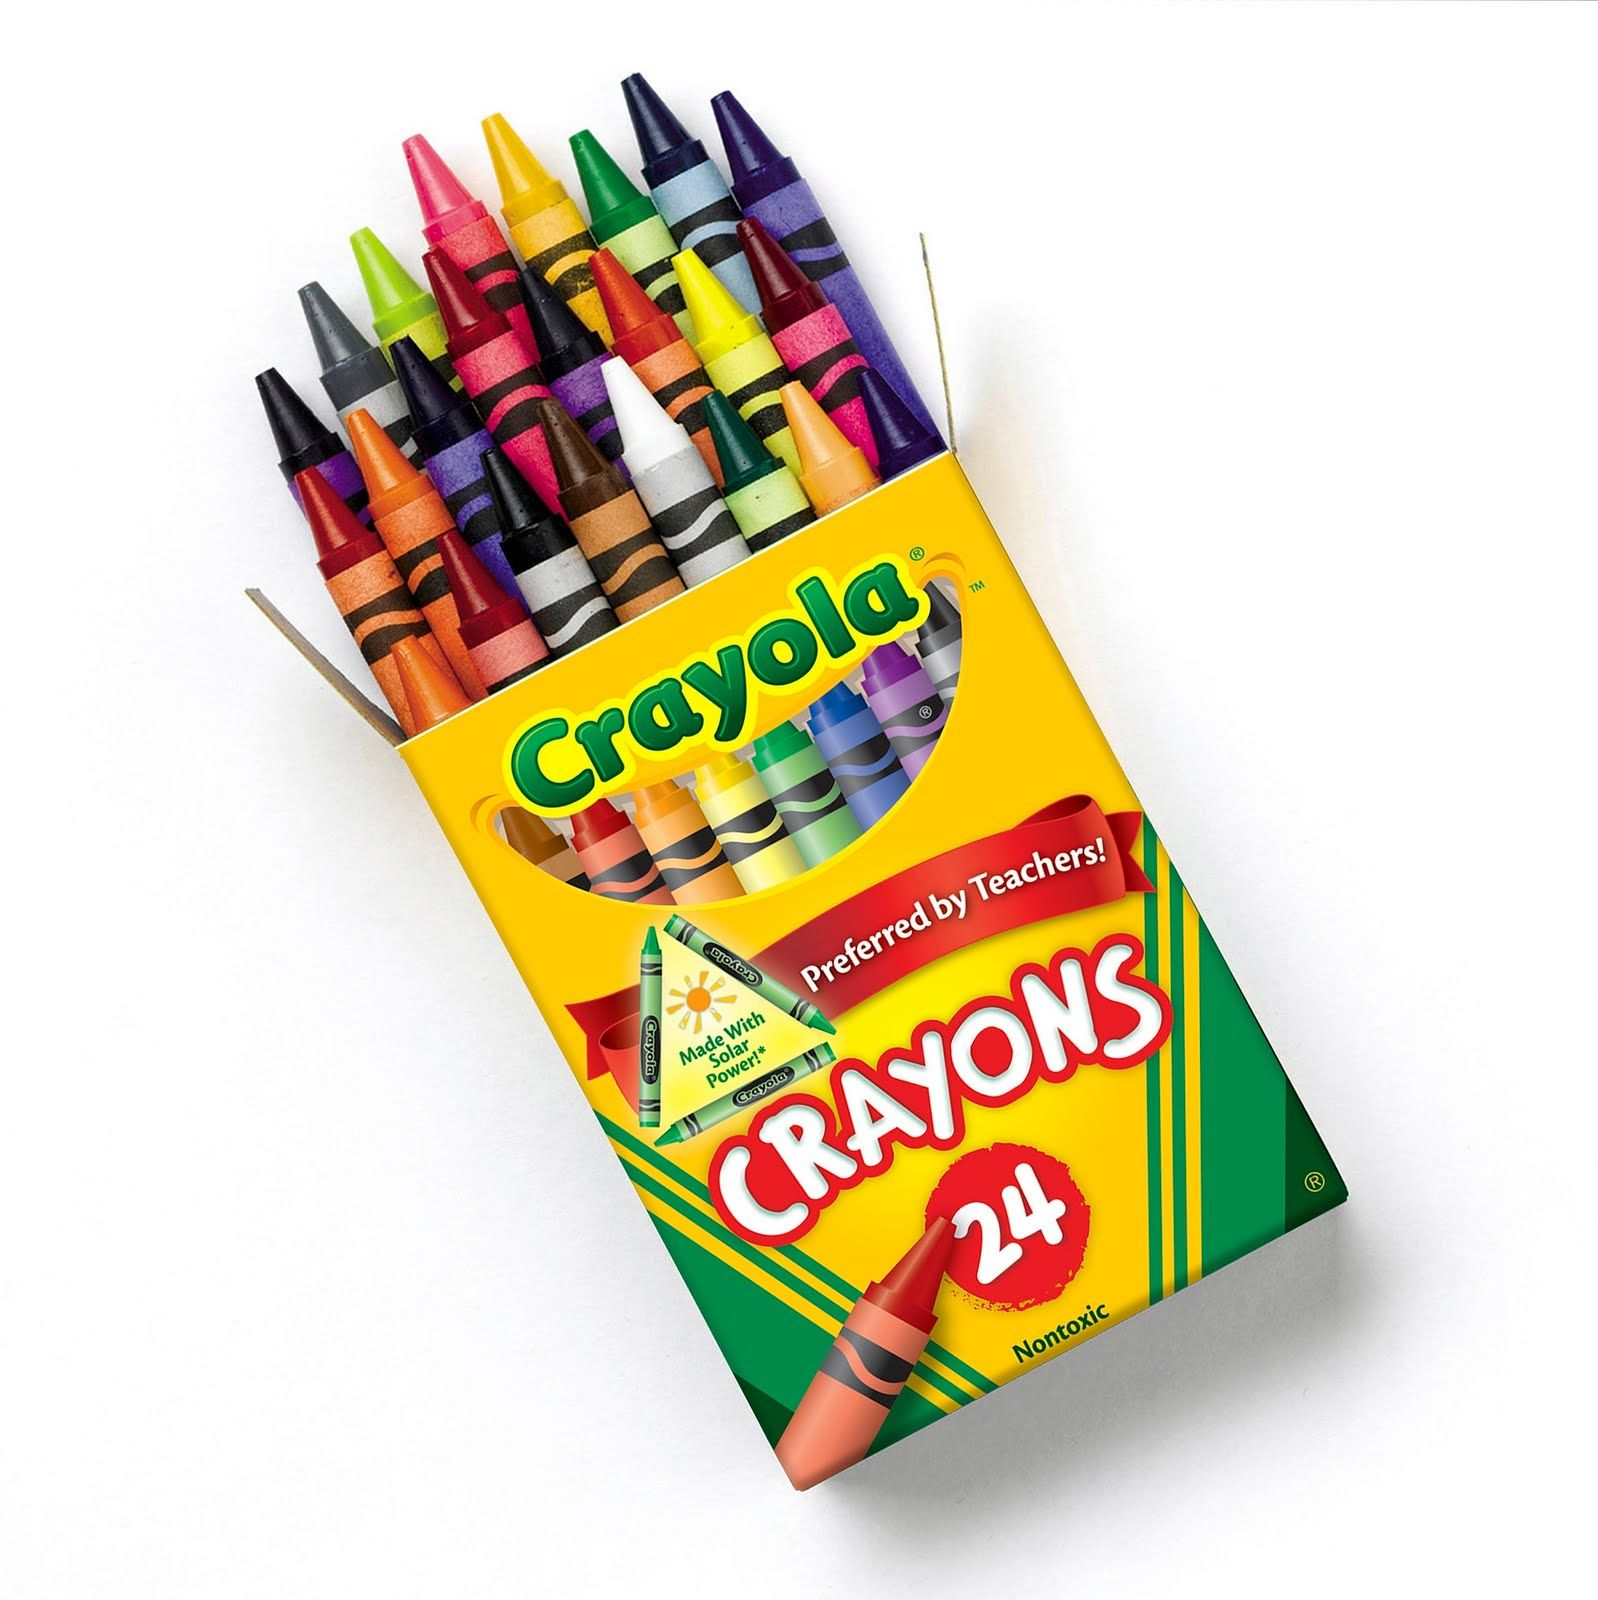 The Crayon Date Crayon Days Crayon Box Pack Of Crayons